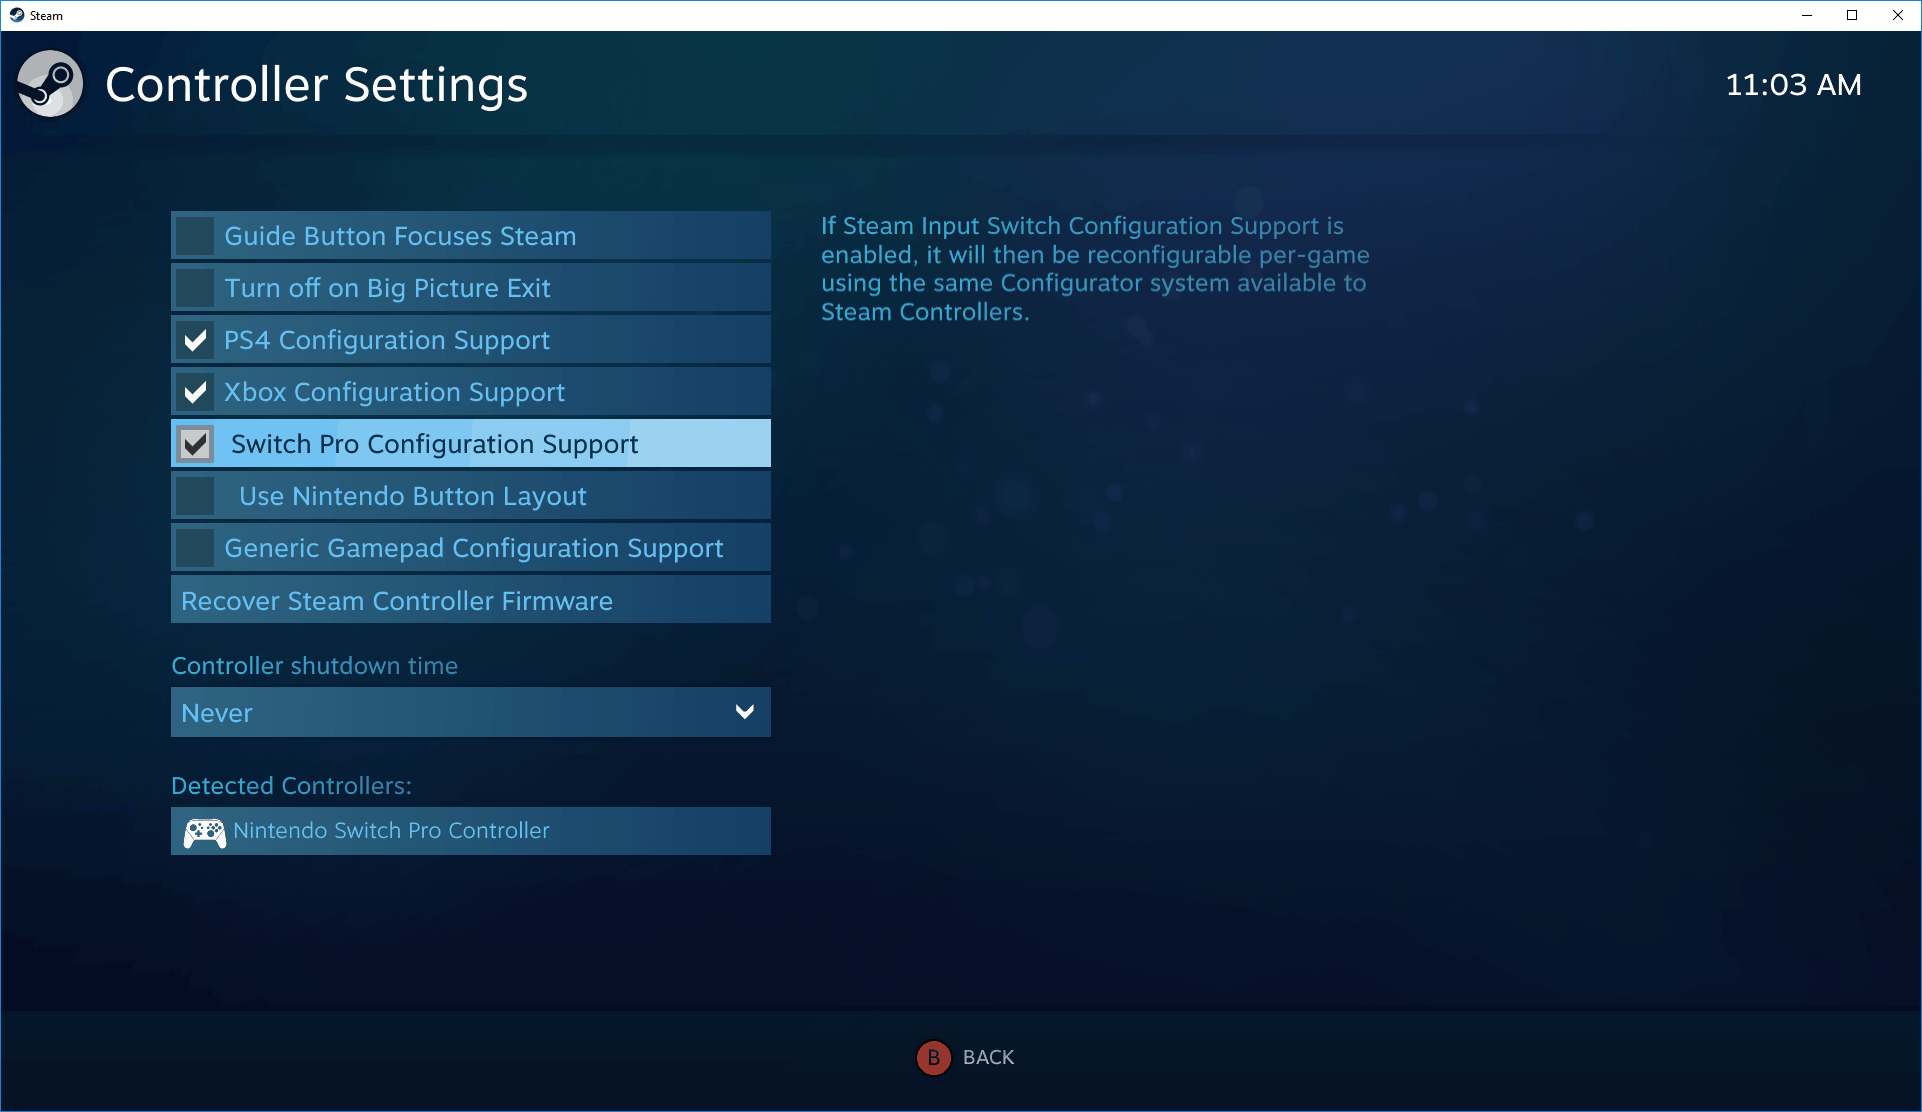 how to connect a switch pro controller to steam